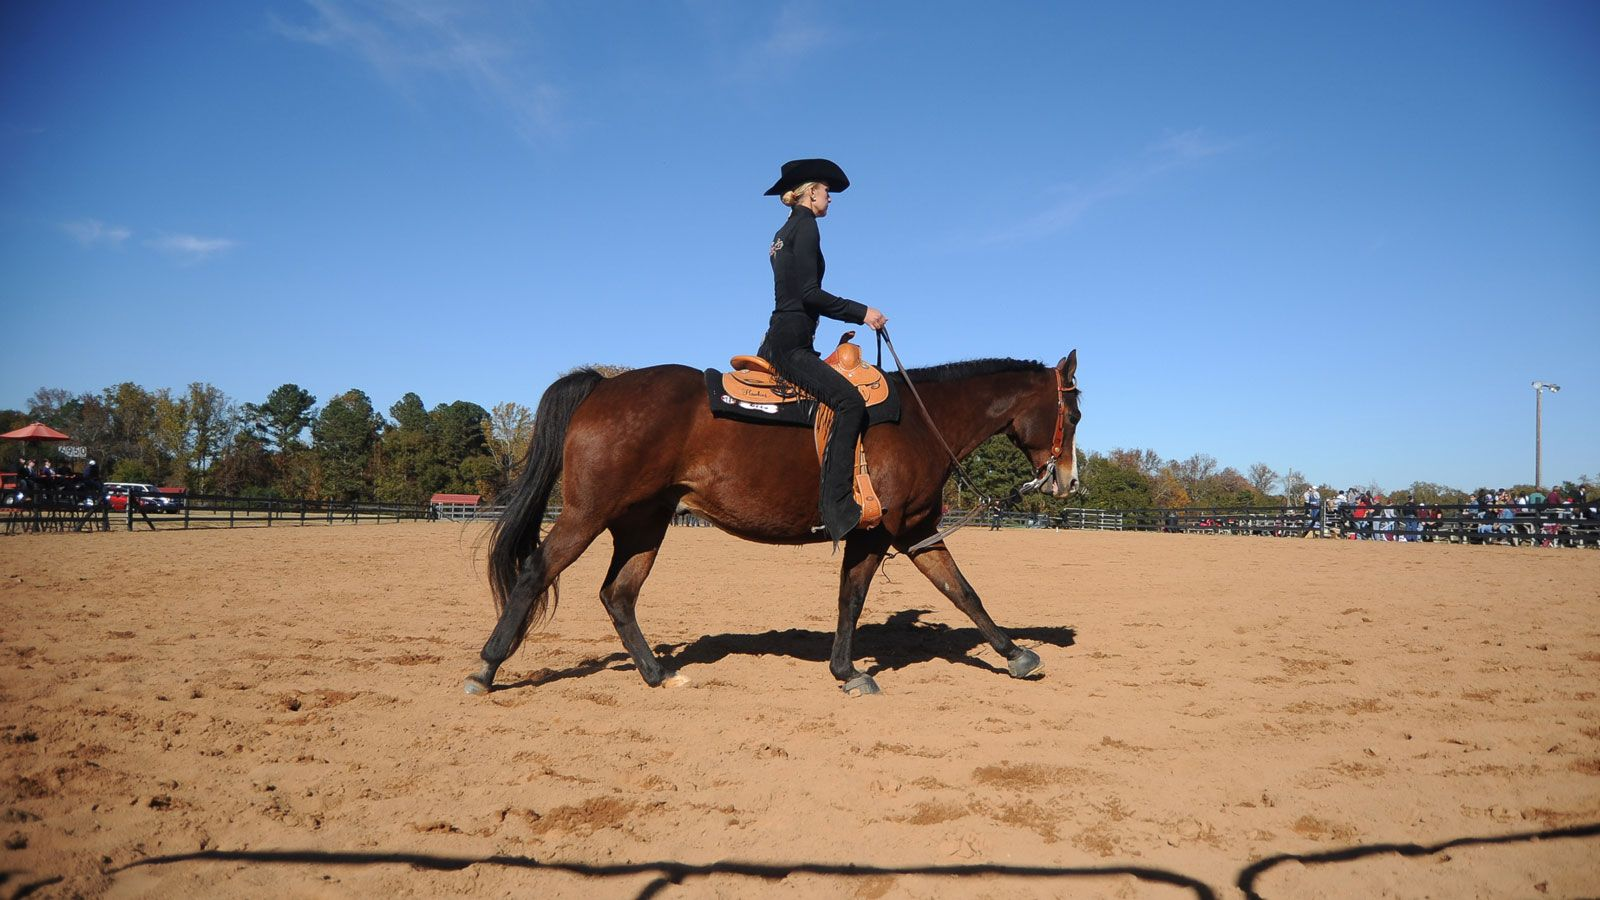 Sec Competition Begins This Week For Equestrian Teams